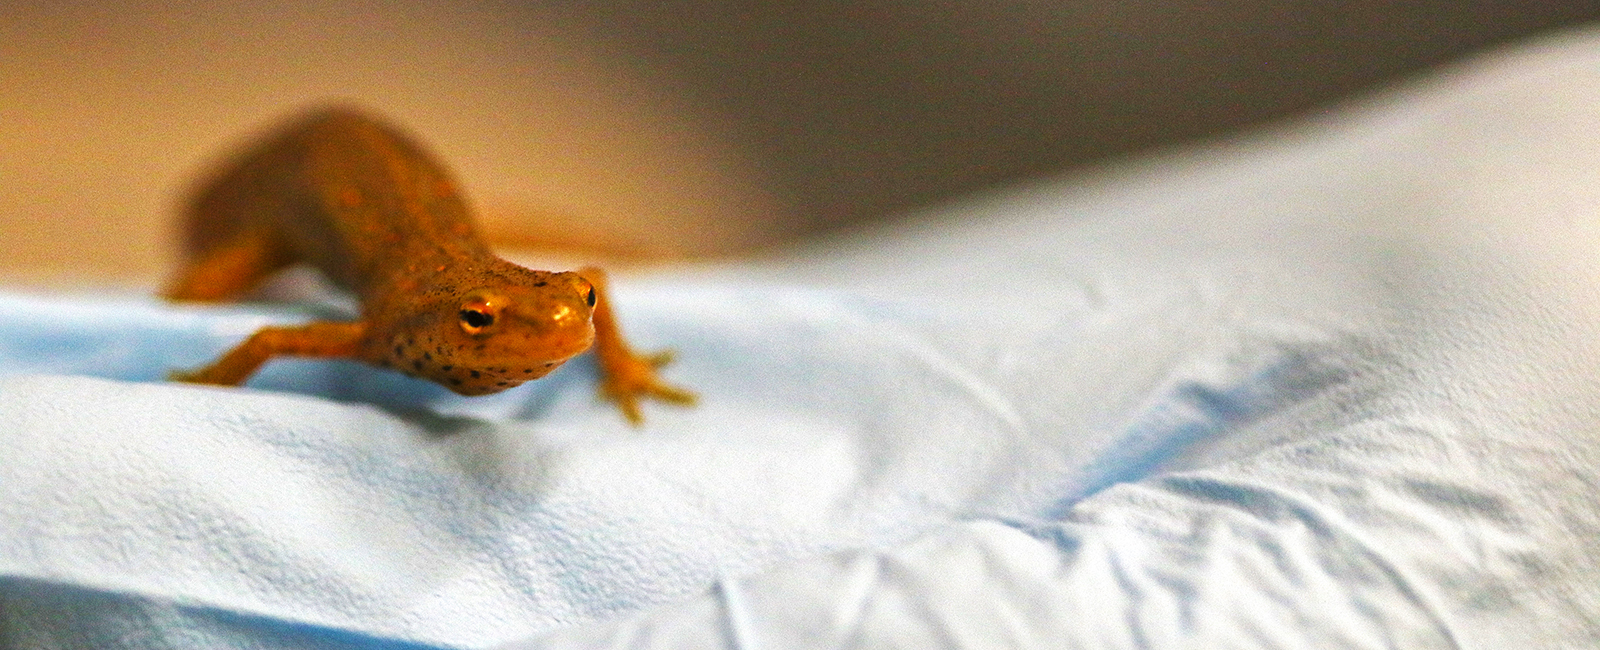 An eastern newt rests on a gloved hand.